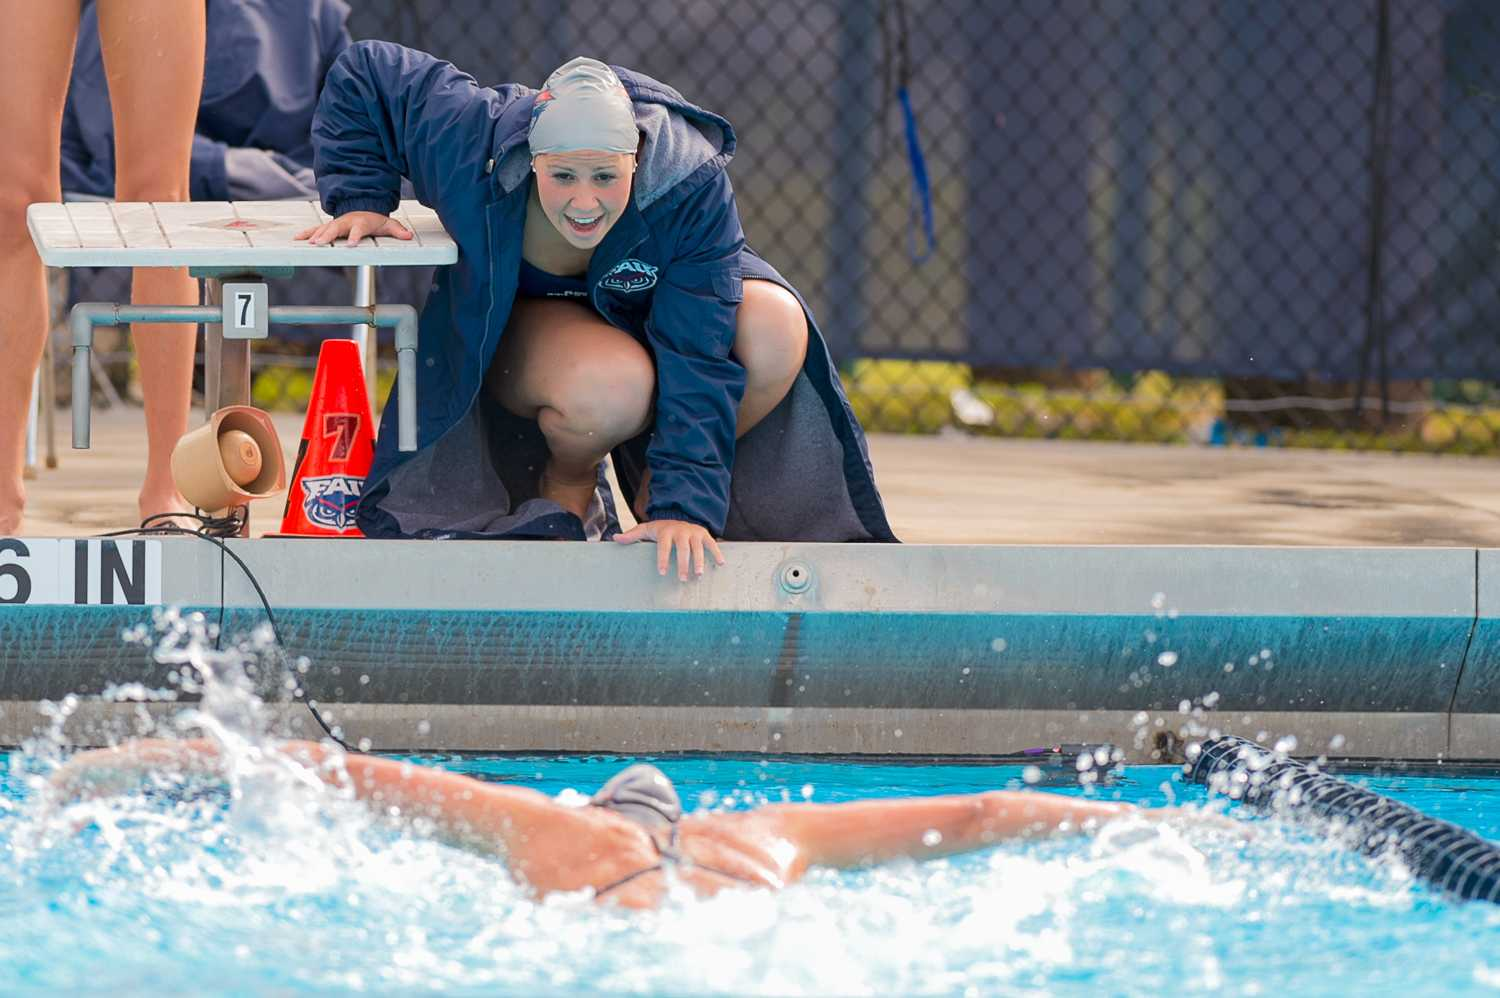 Sahra El-Hamaki cheers on her teammate in the final stretch of the women's 200 yard butterfly.